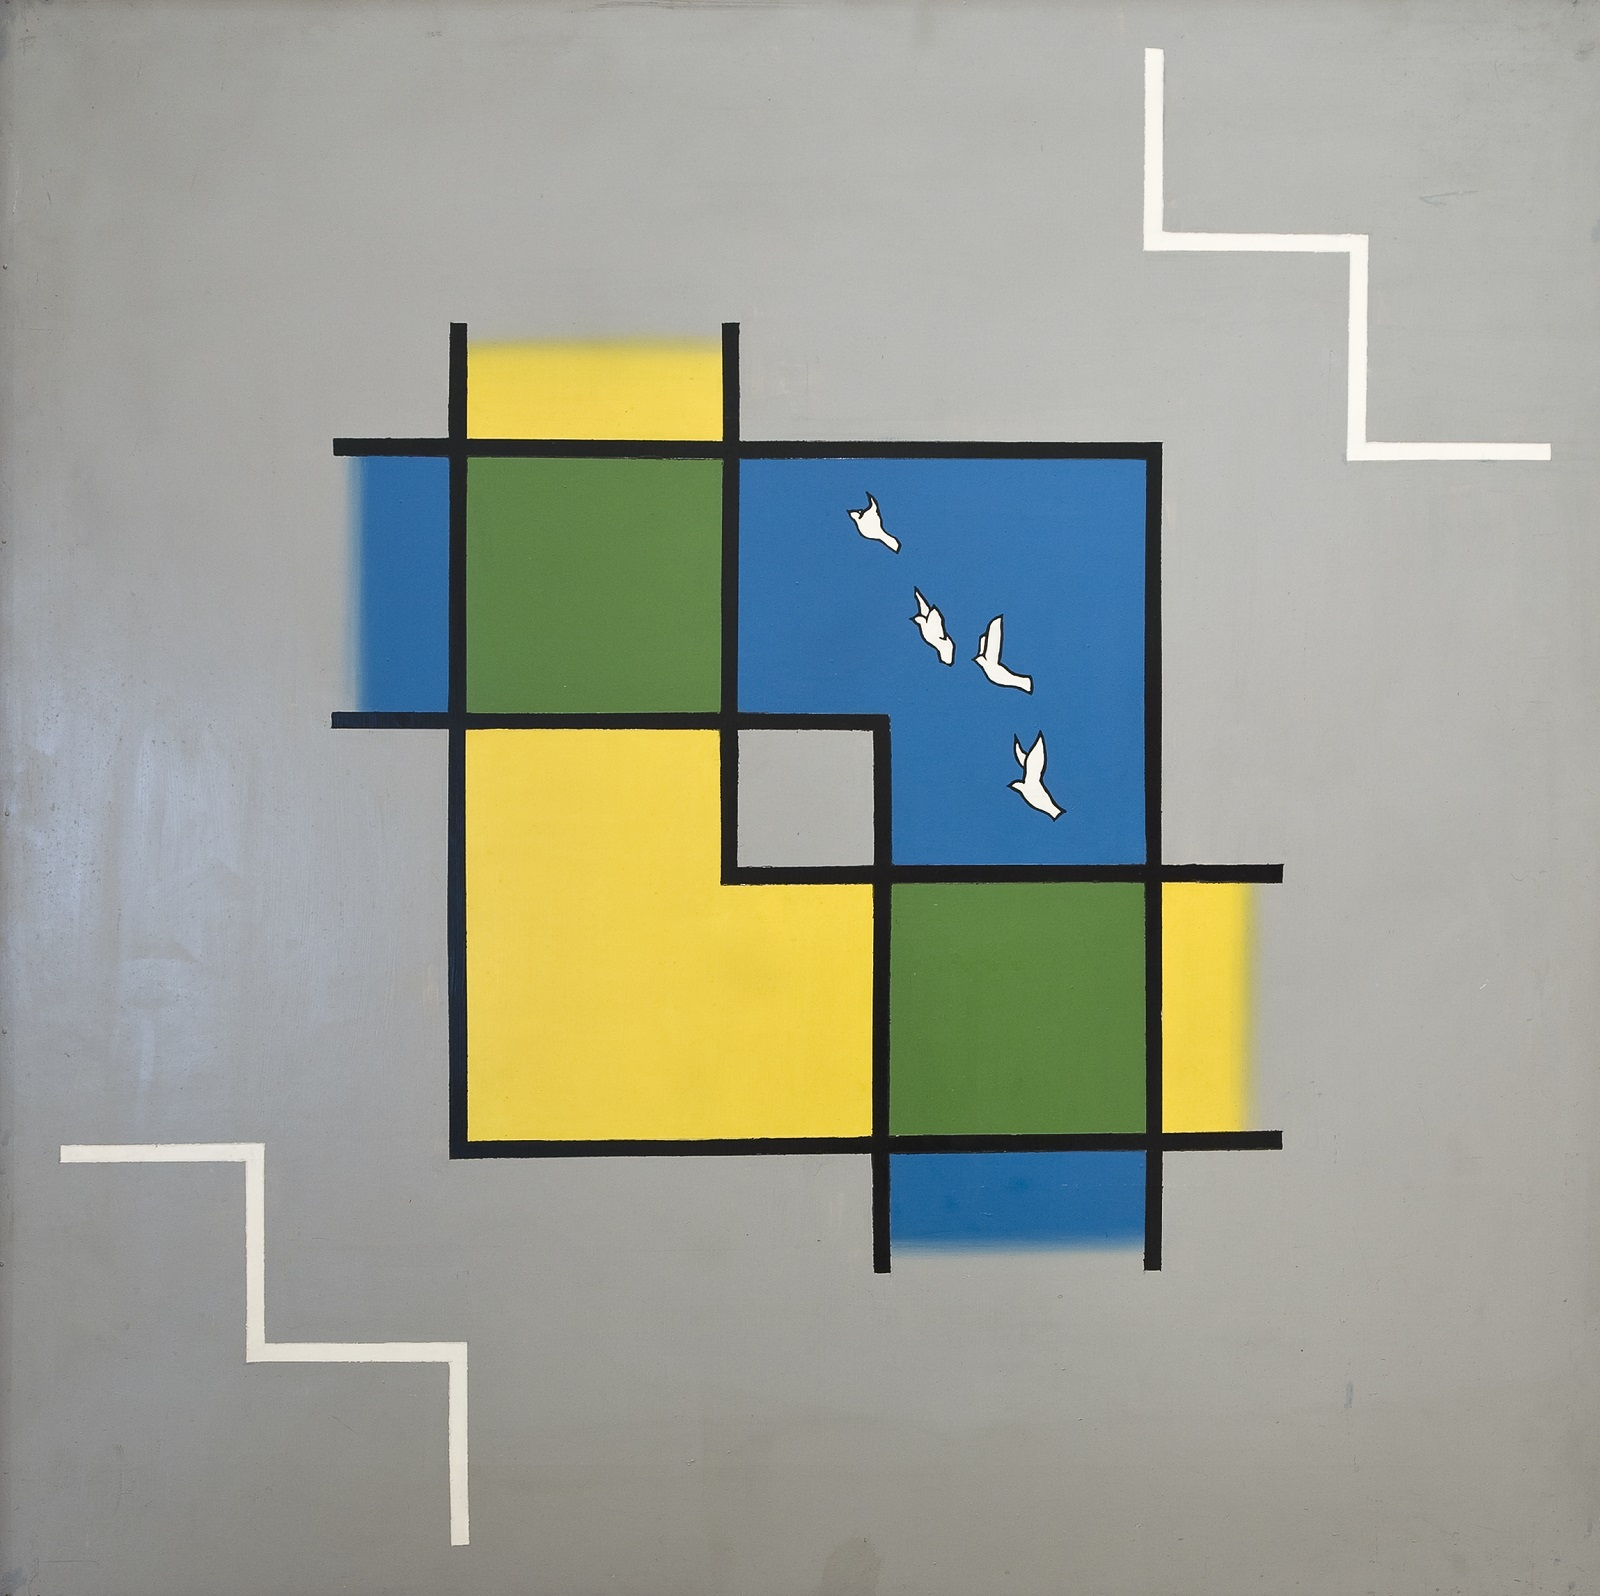 Two intersecting L shapes in blue and yellow, with four white birds outlined mid-flight against the blue. Where the shapes intersect, the colour turns green. Against a grey background.